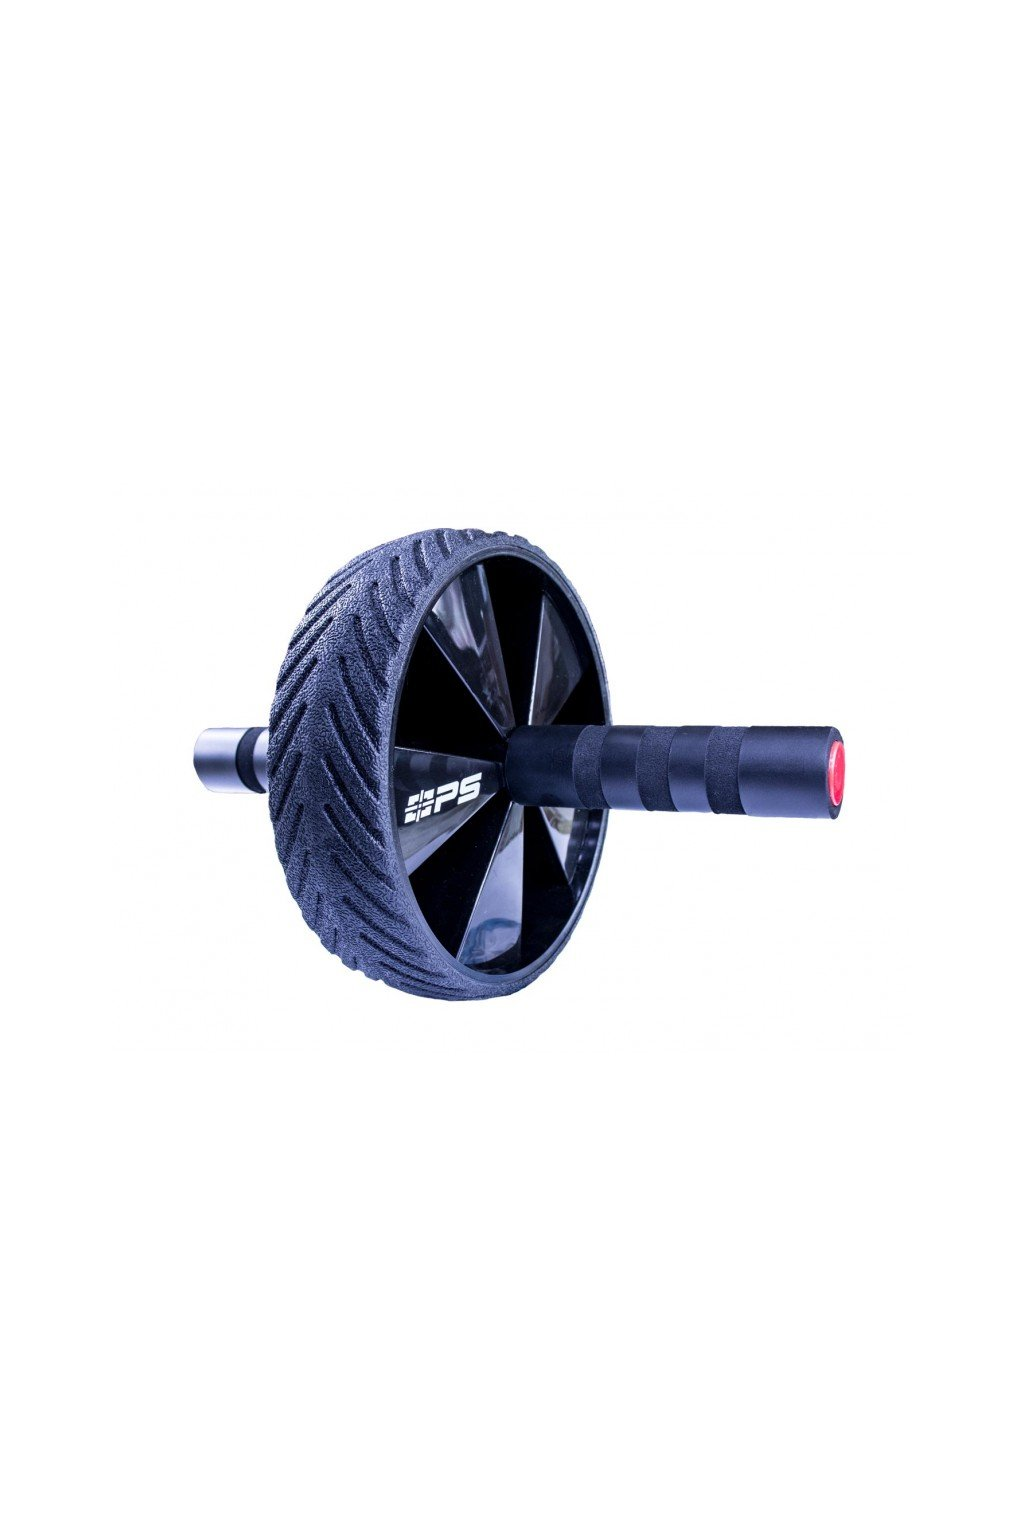 power system posilovaci kolecko phantom ab wheel